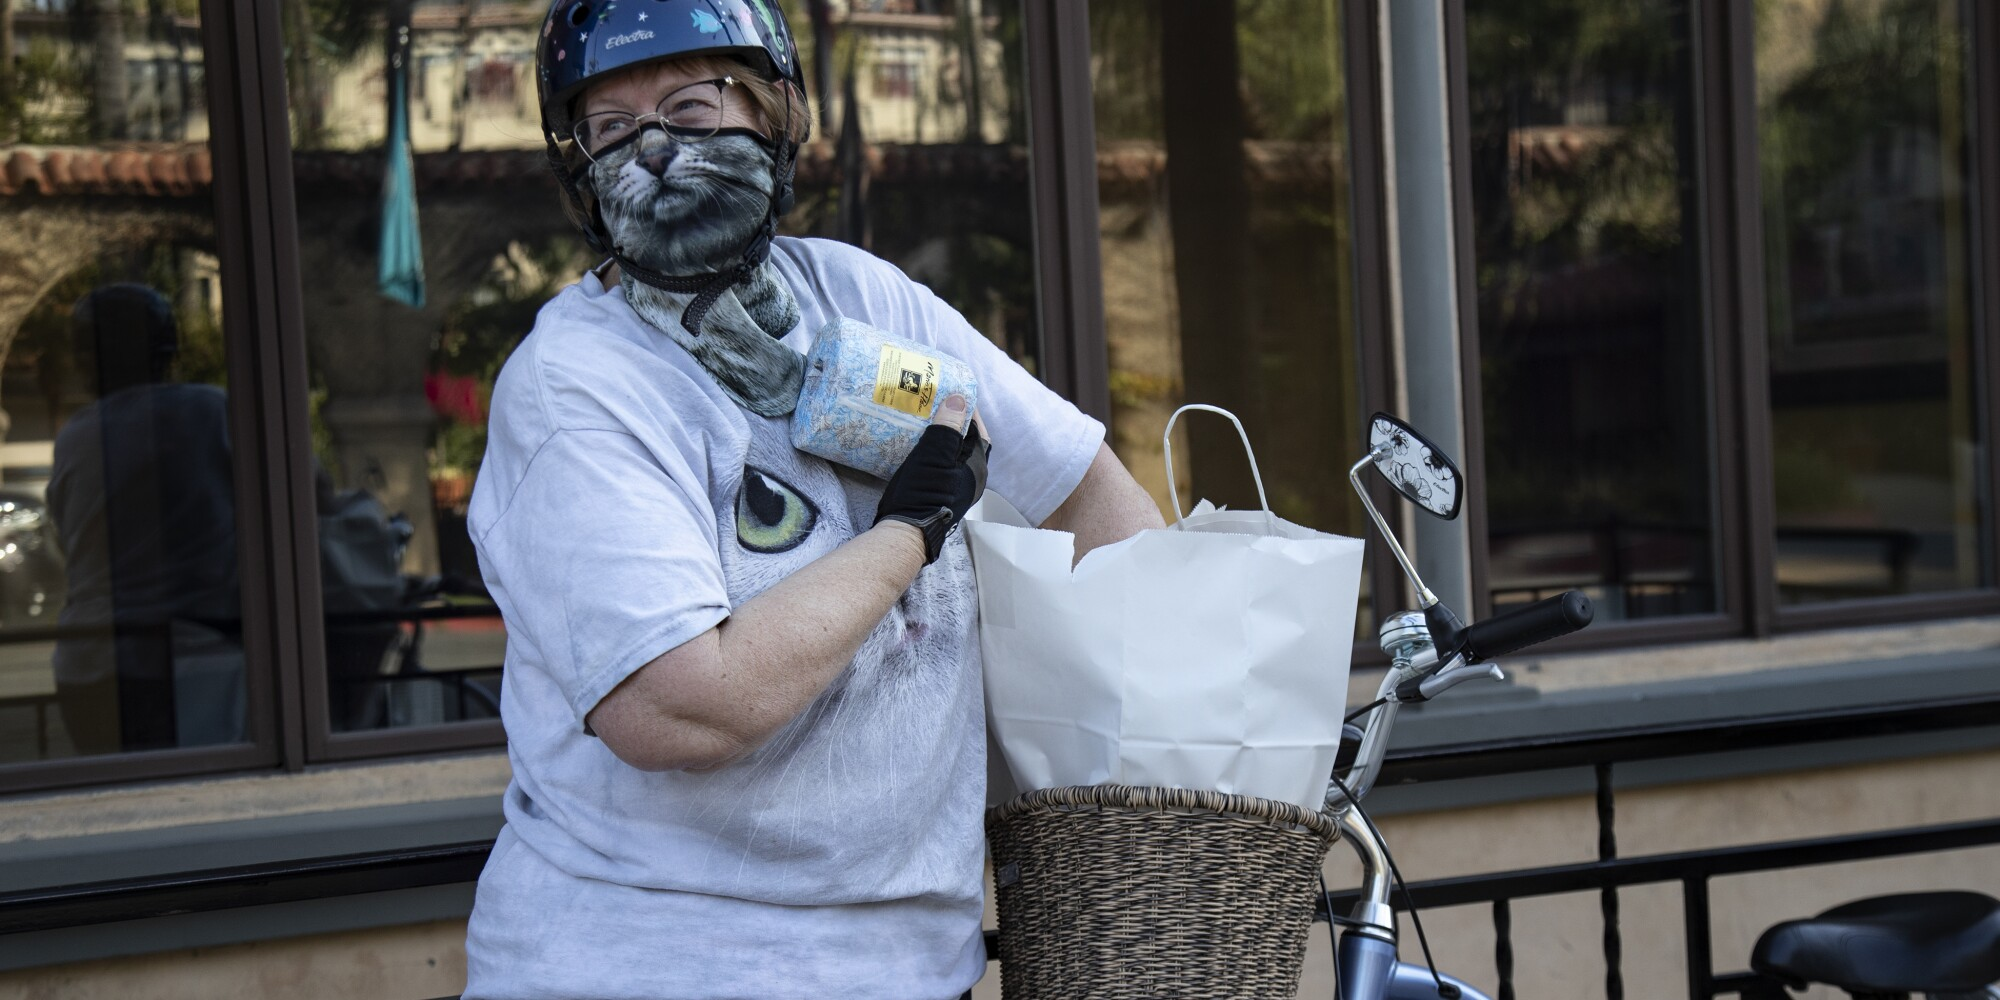 A woman wearing a cat mask picks up takeout in Riverside